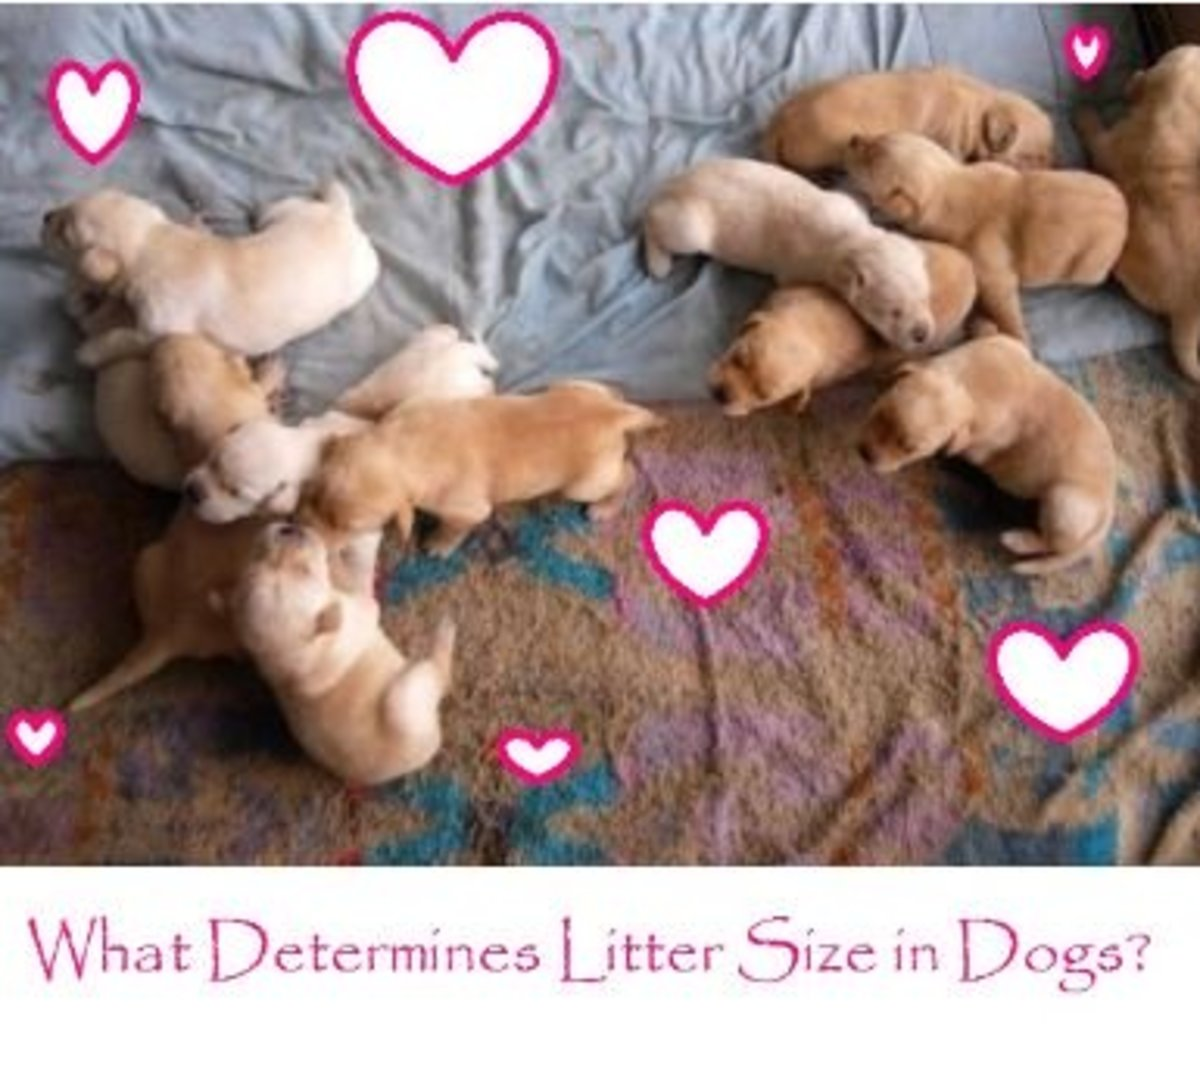 dog-litter-size-determination